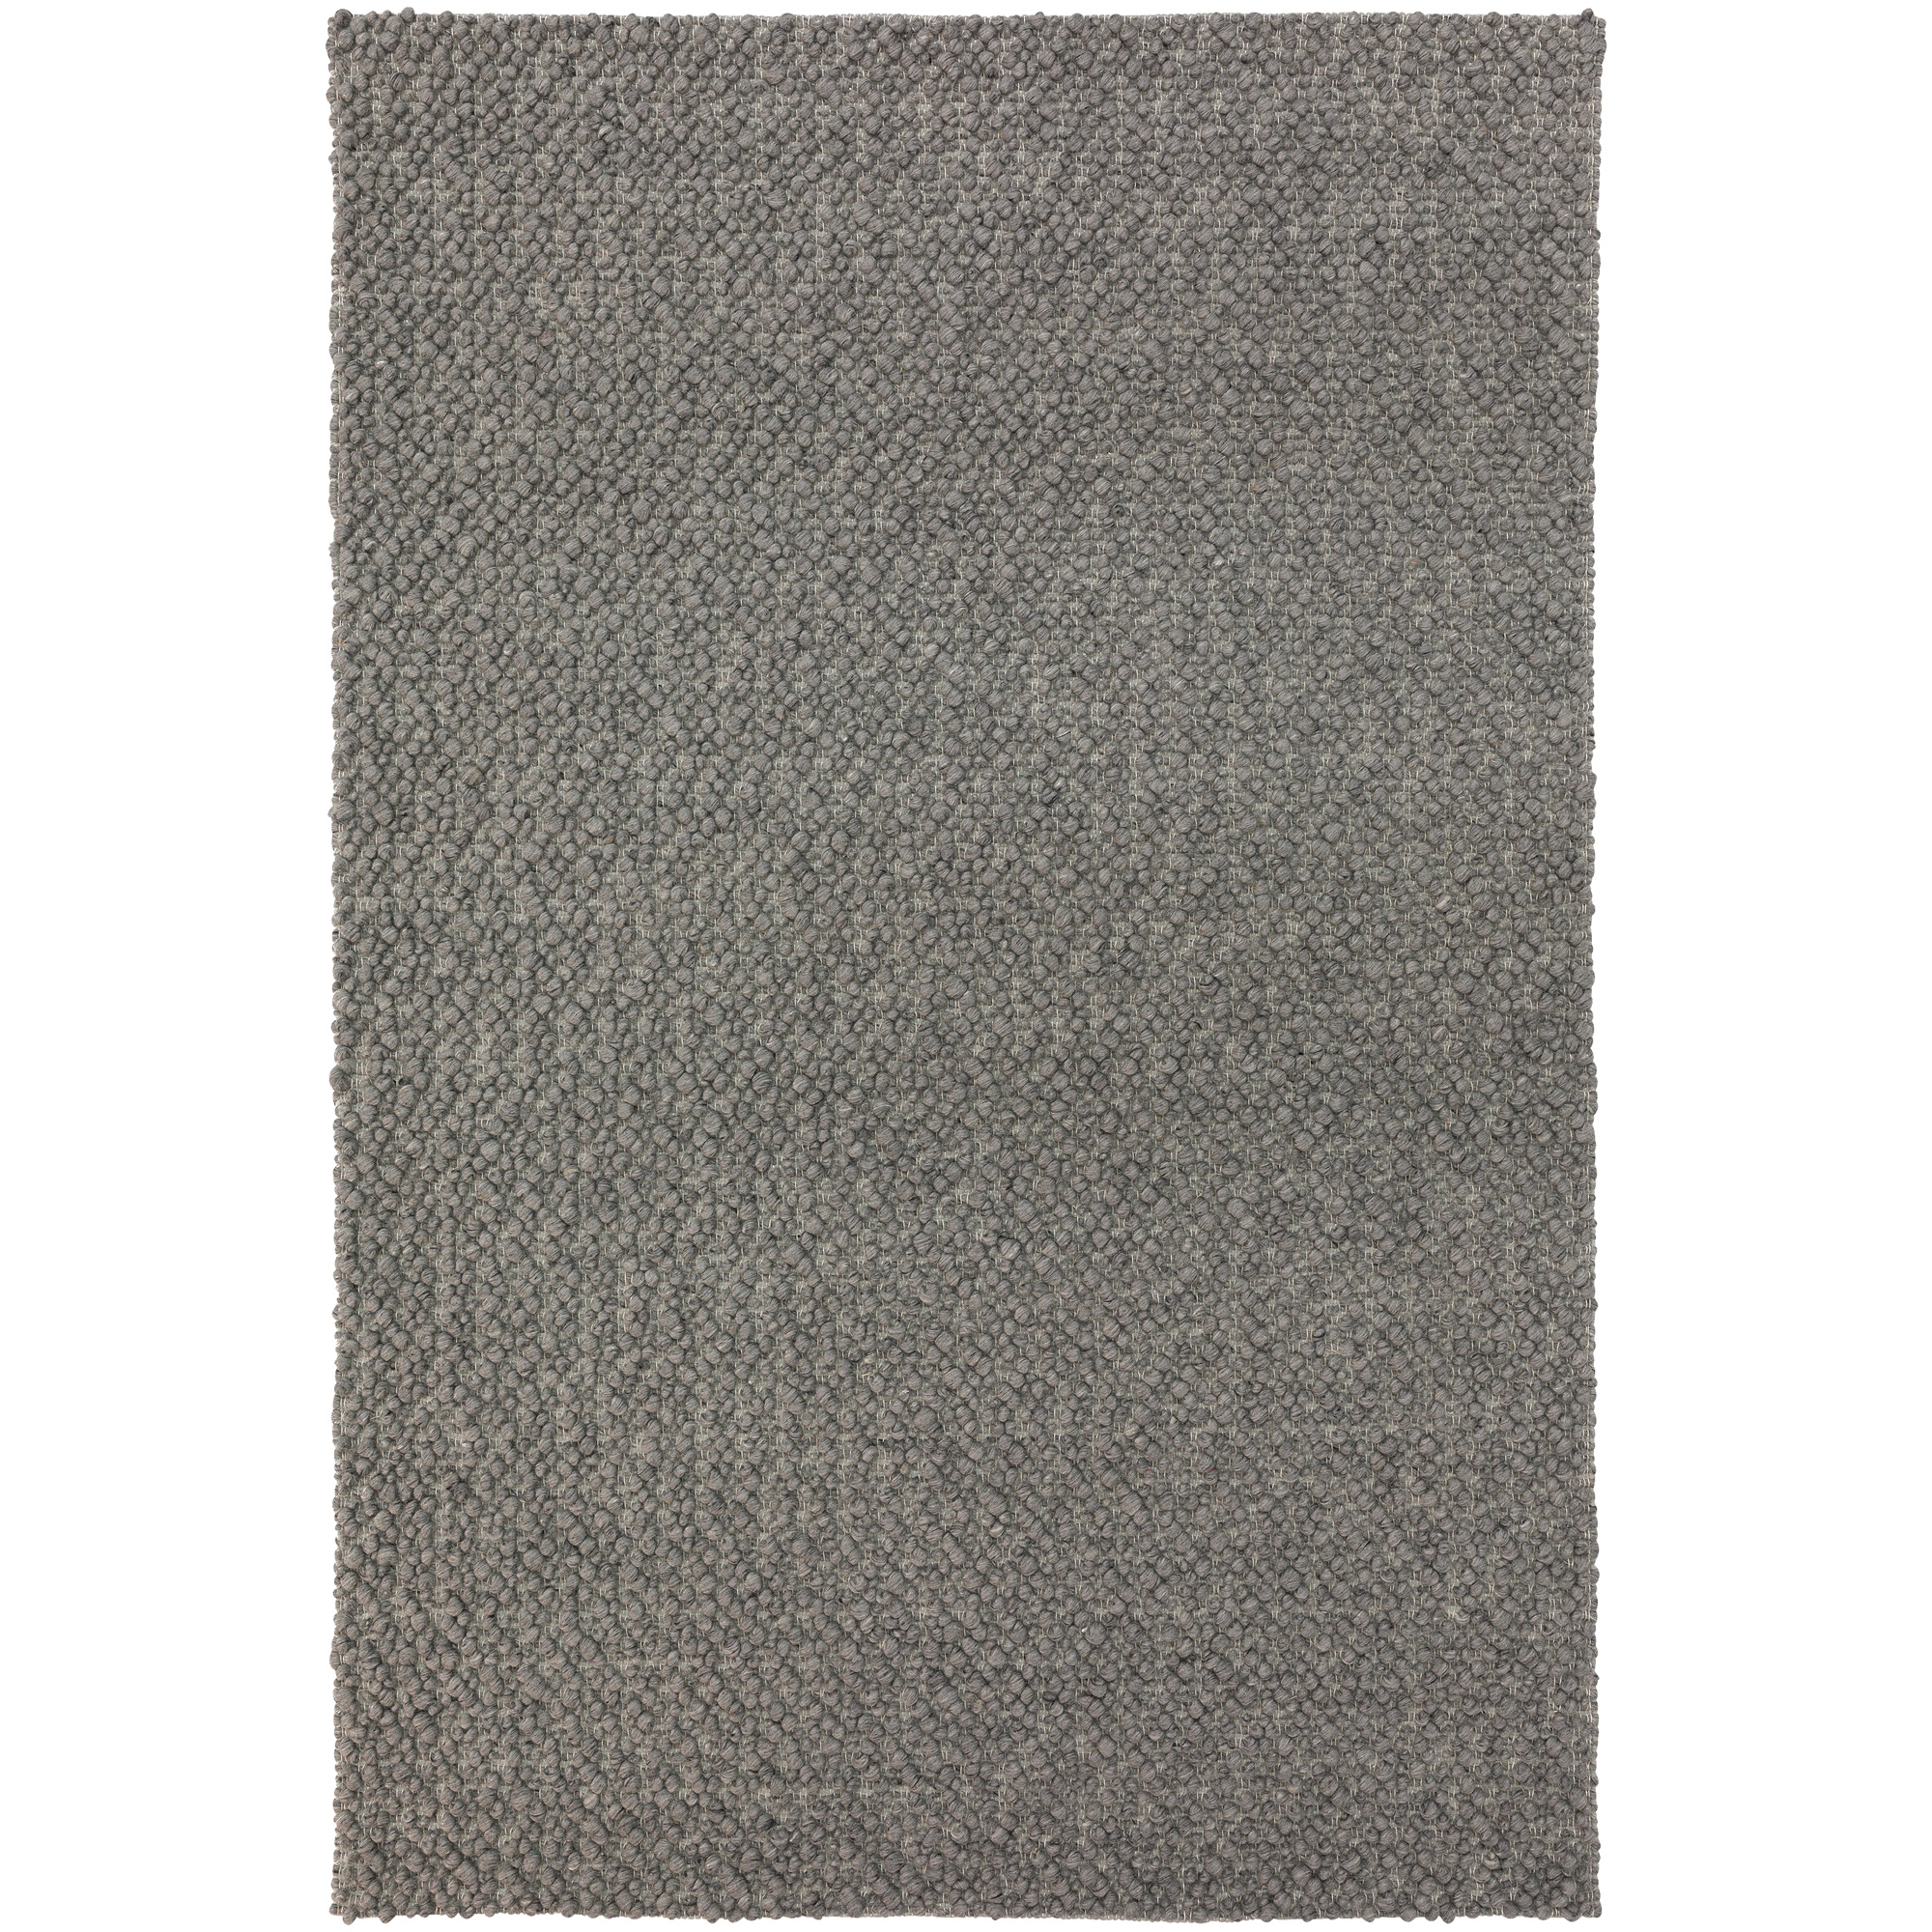 Dalyn Rug Company | Gorbea Pewter 5x8 Area Rug